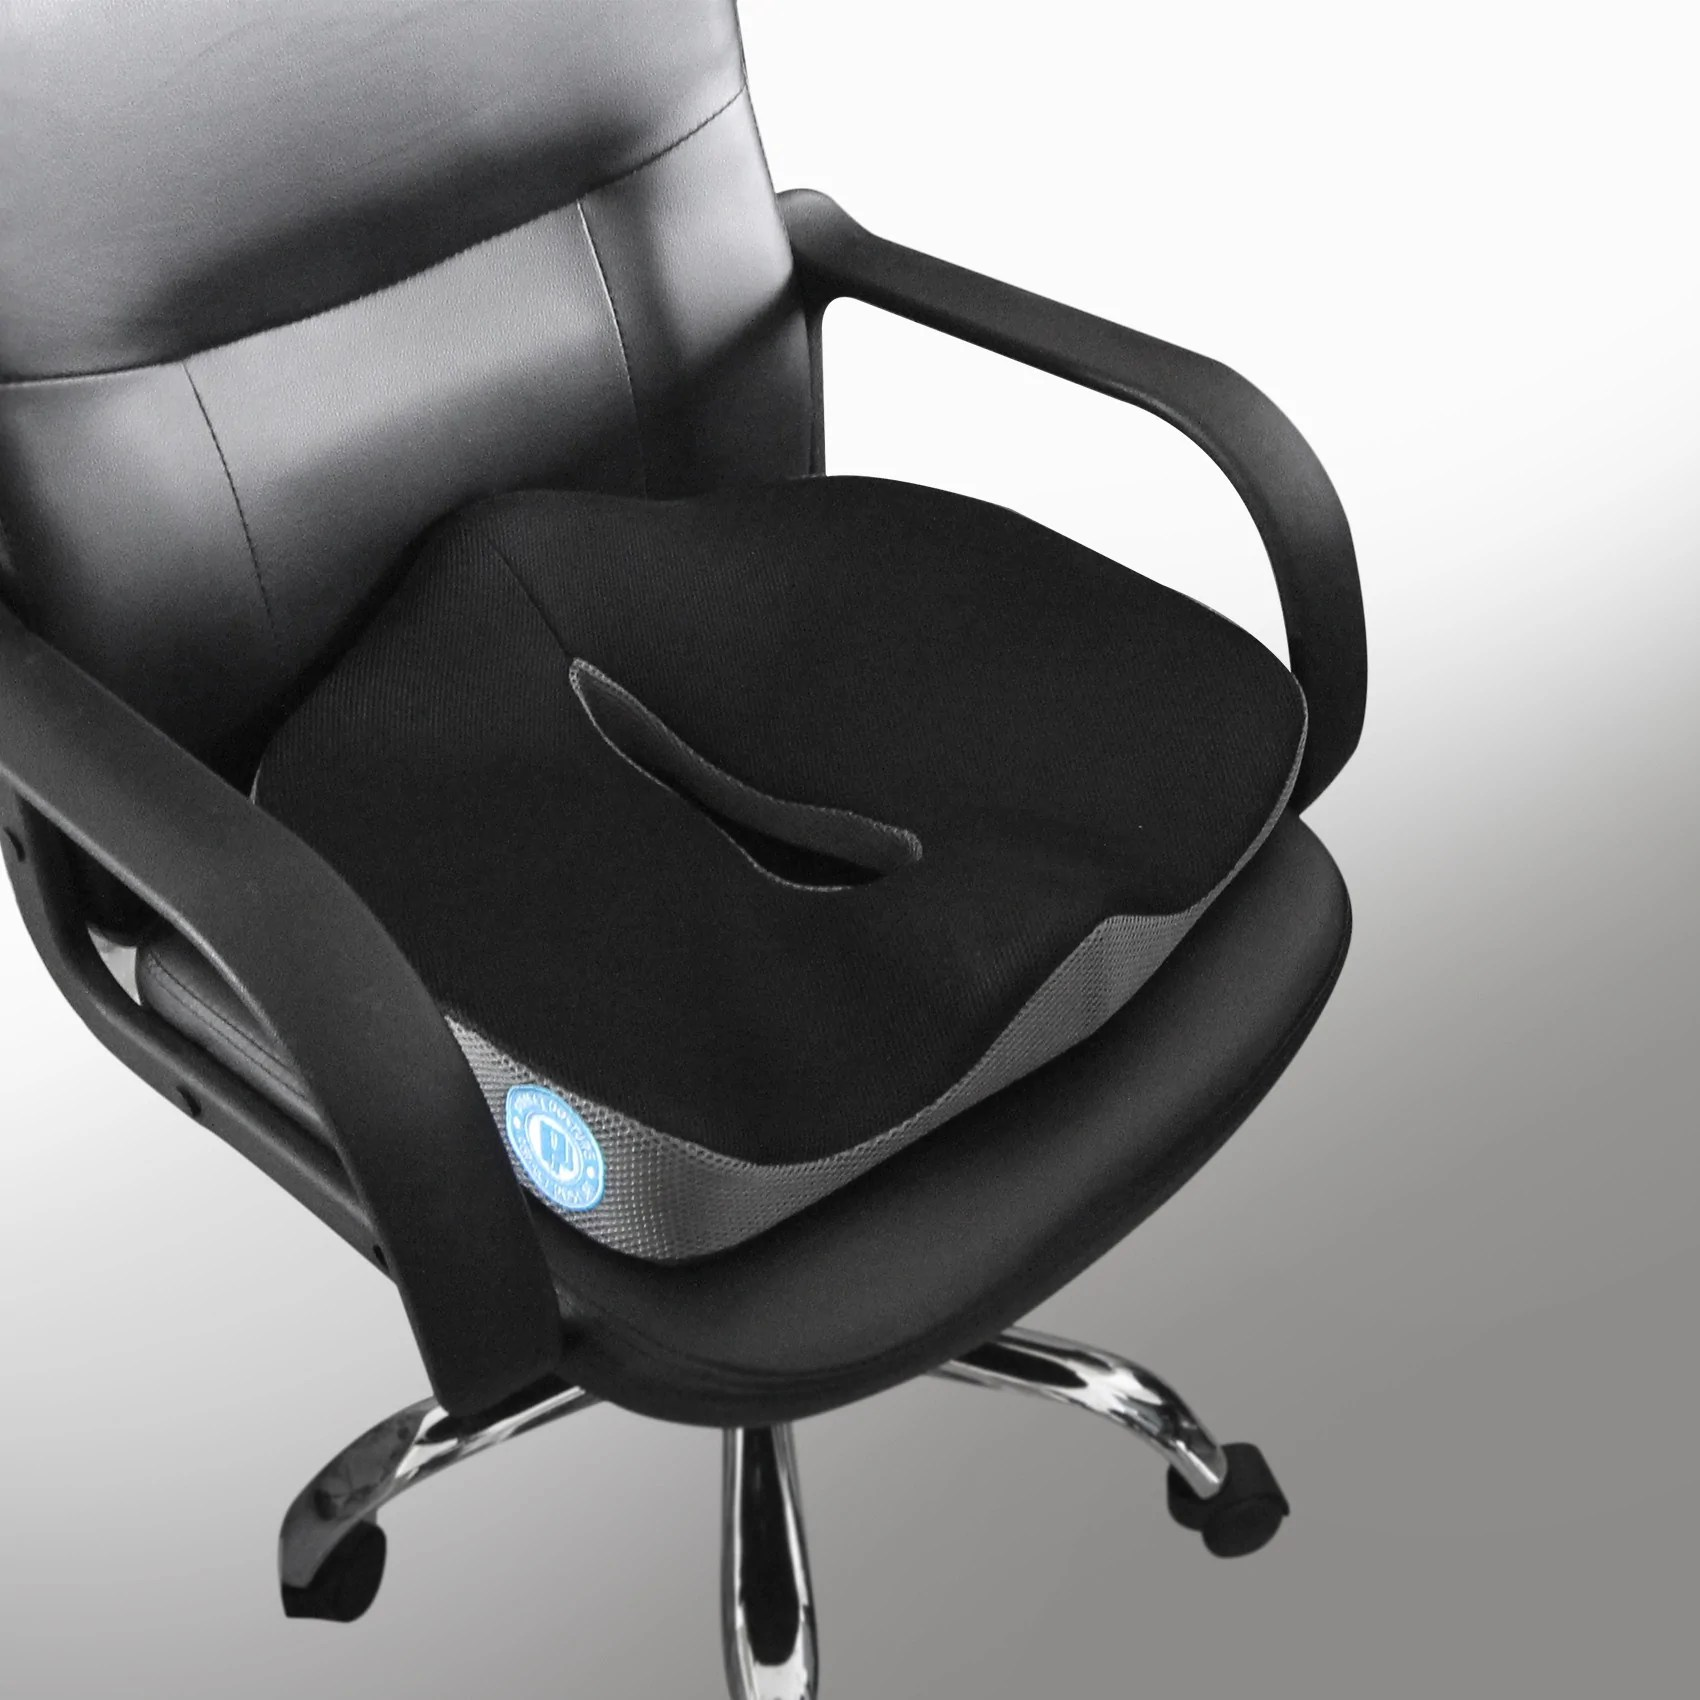 perfect posture in chair eames time life replica inspirational foam cushions rtty1